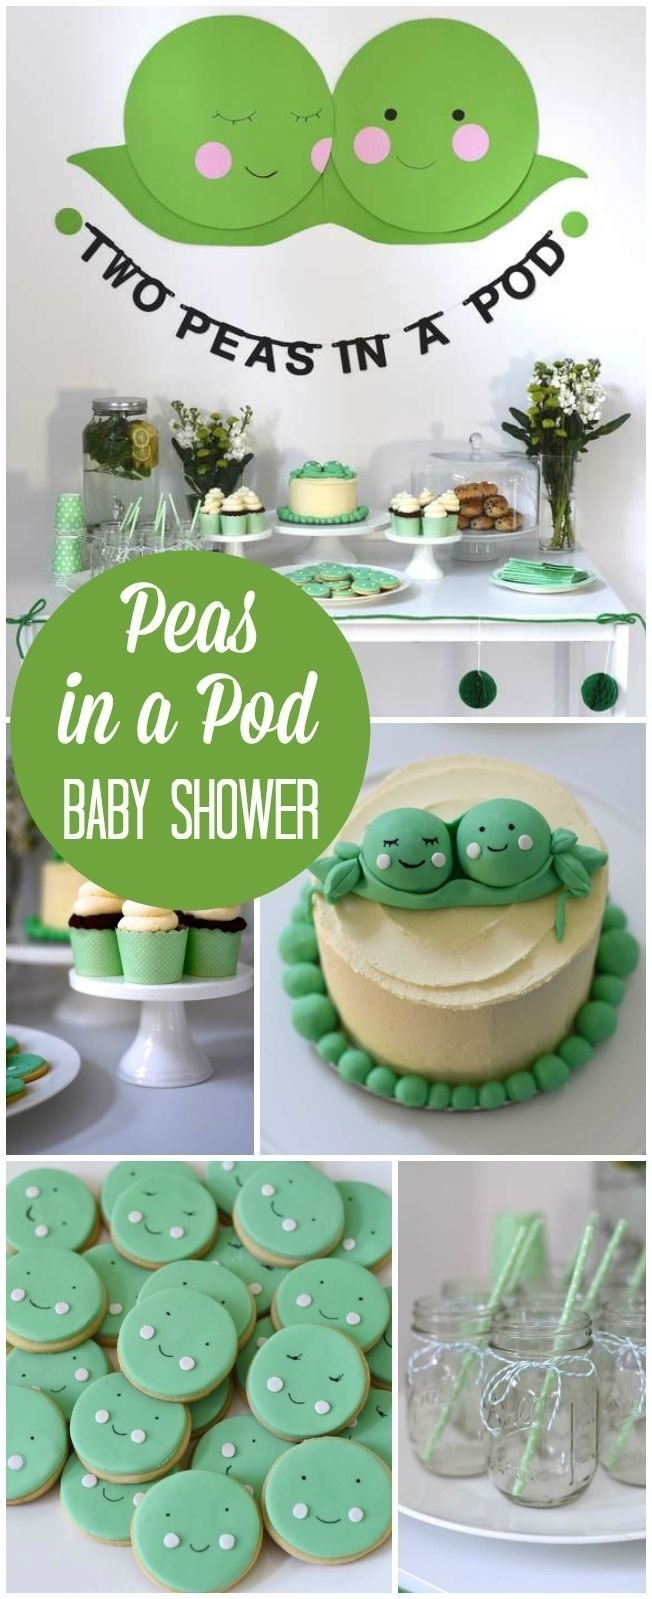 10 Most Recommended Two Peas In A Pod Baby Shower Ideas peas in a pod baby shower two peas in a pod a twin baby shower 2020